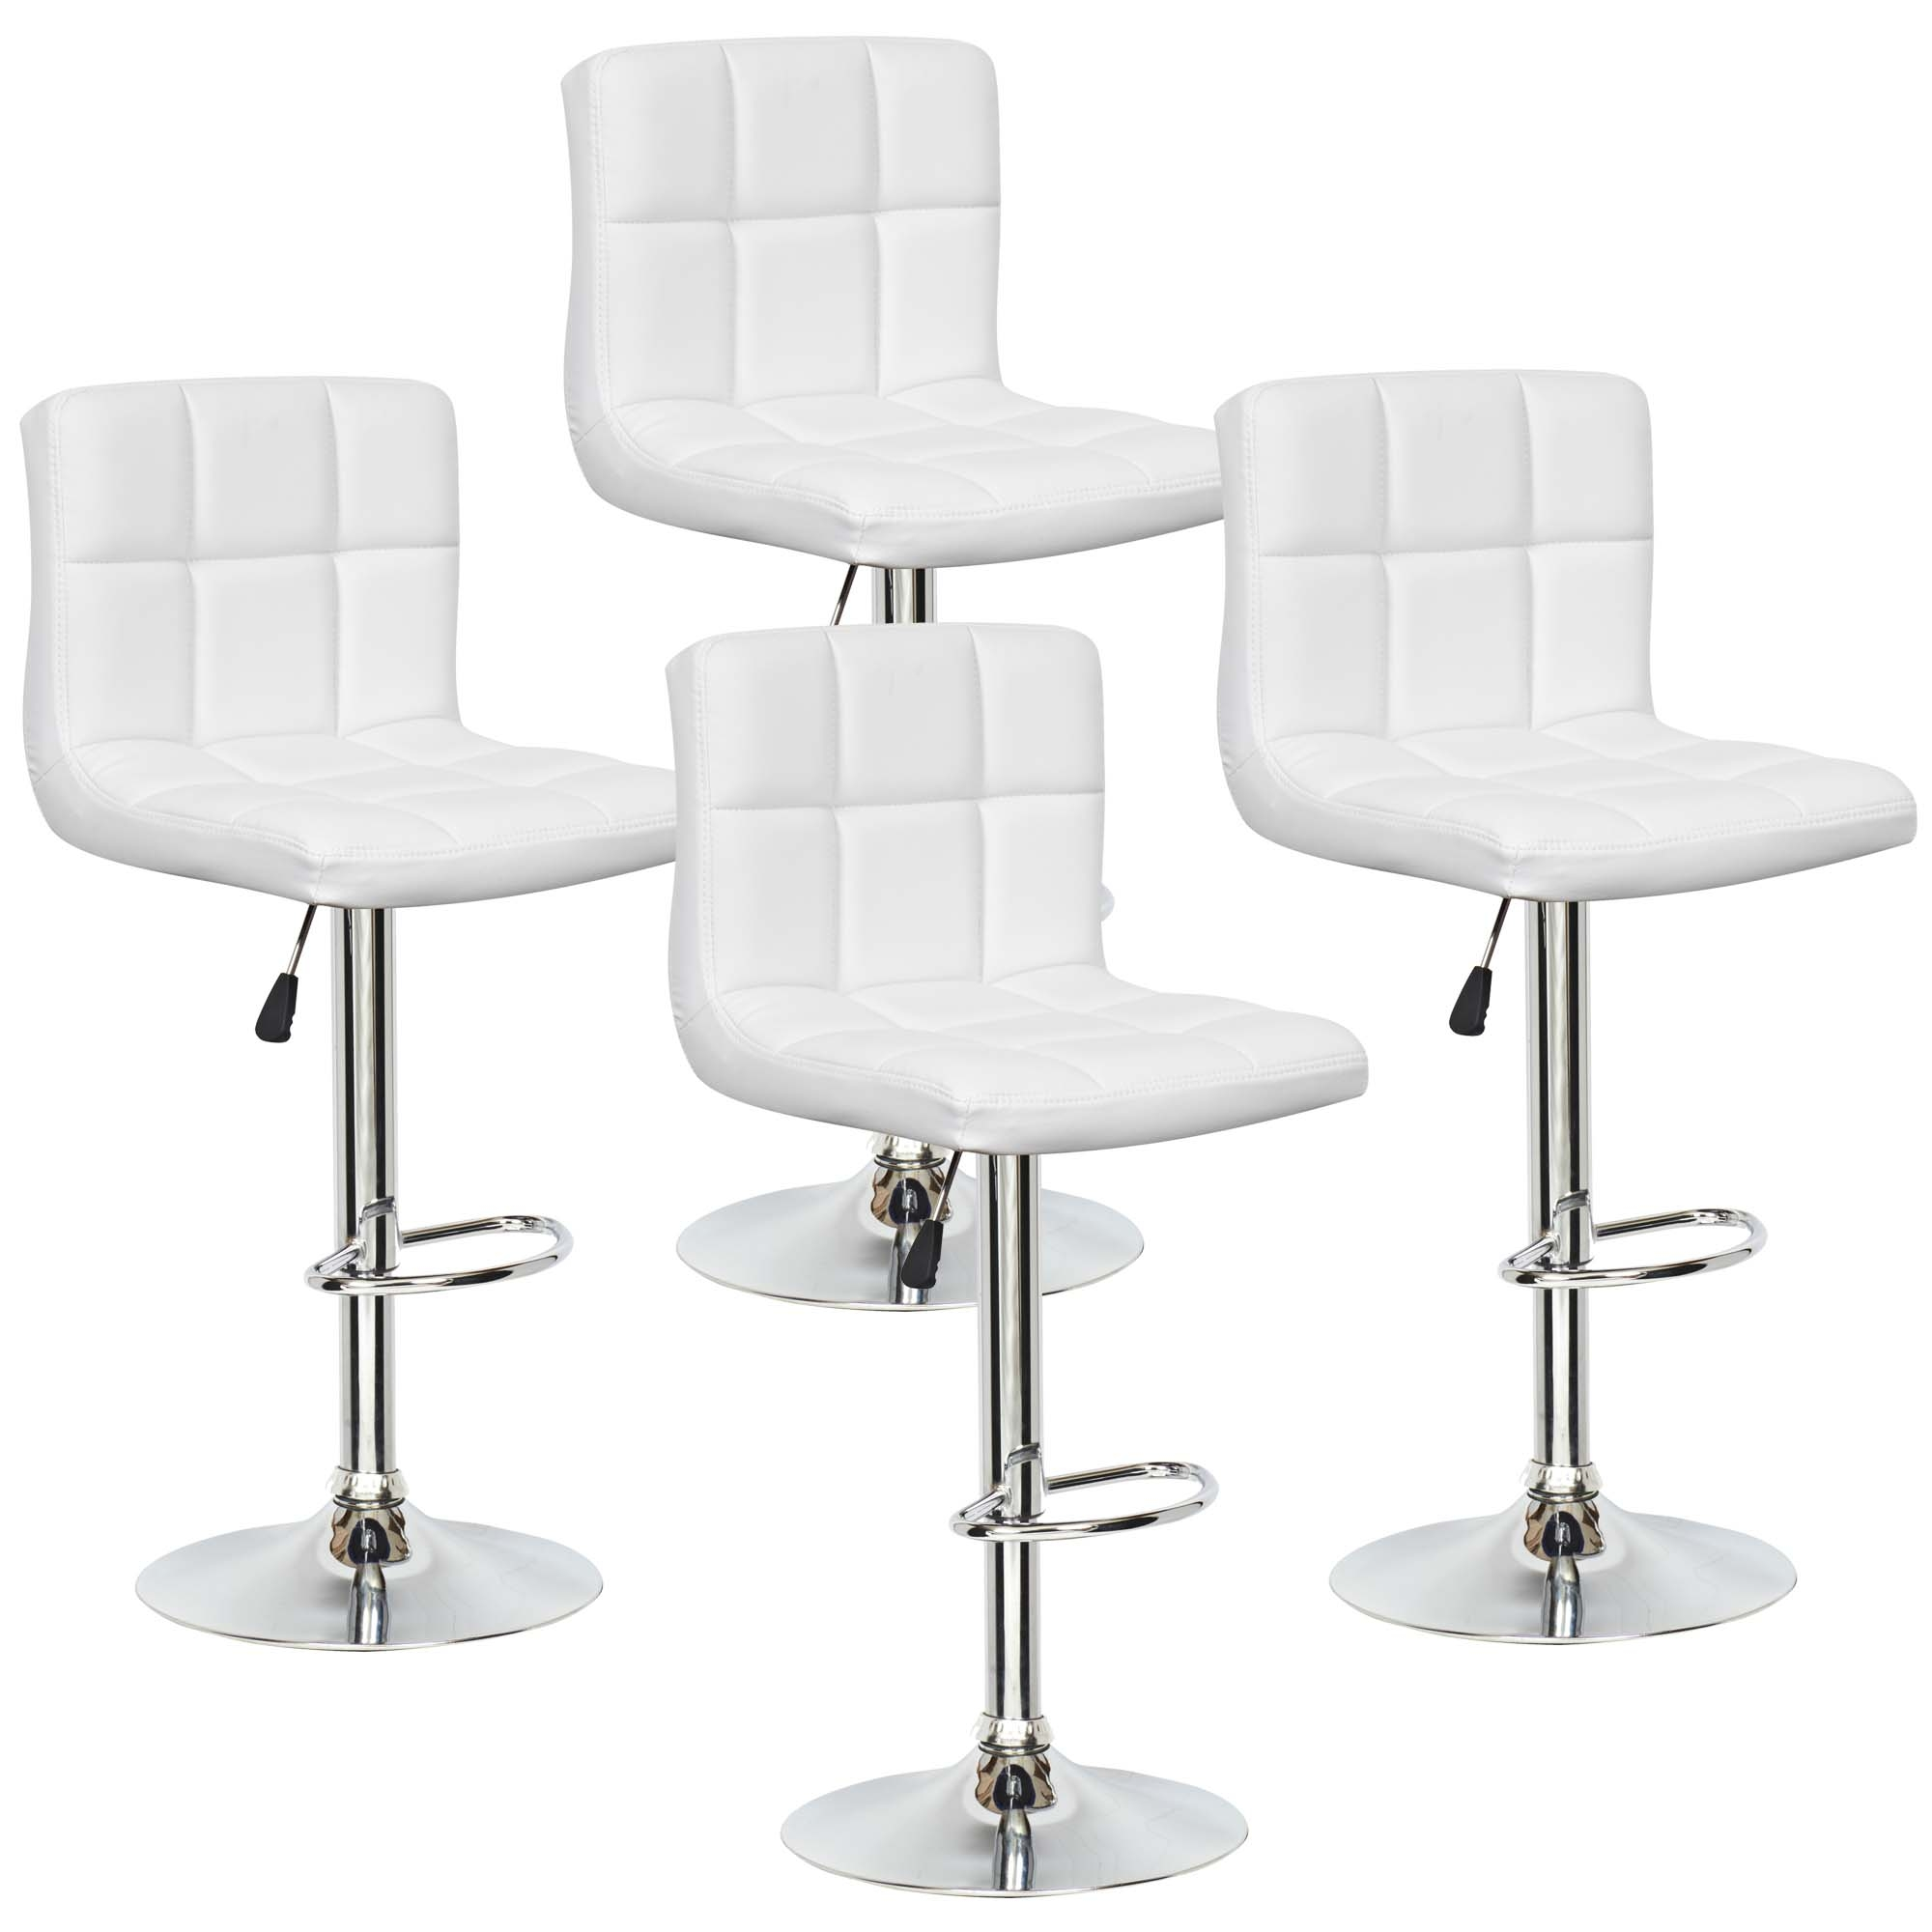 tabouret blanc de bar maison et mobilier d 39 int rieur. Black Bedroom Furniture Sets. Home Design Ideas